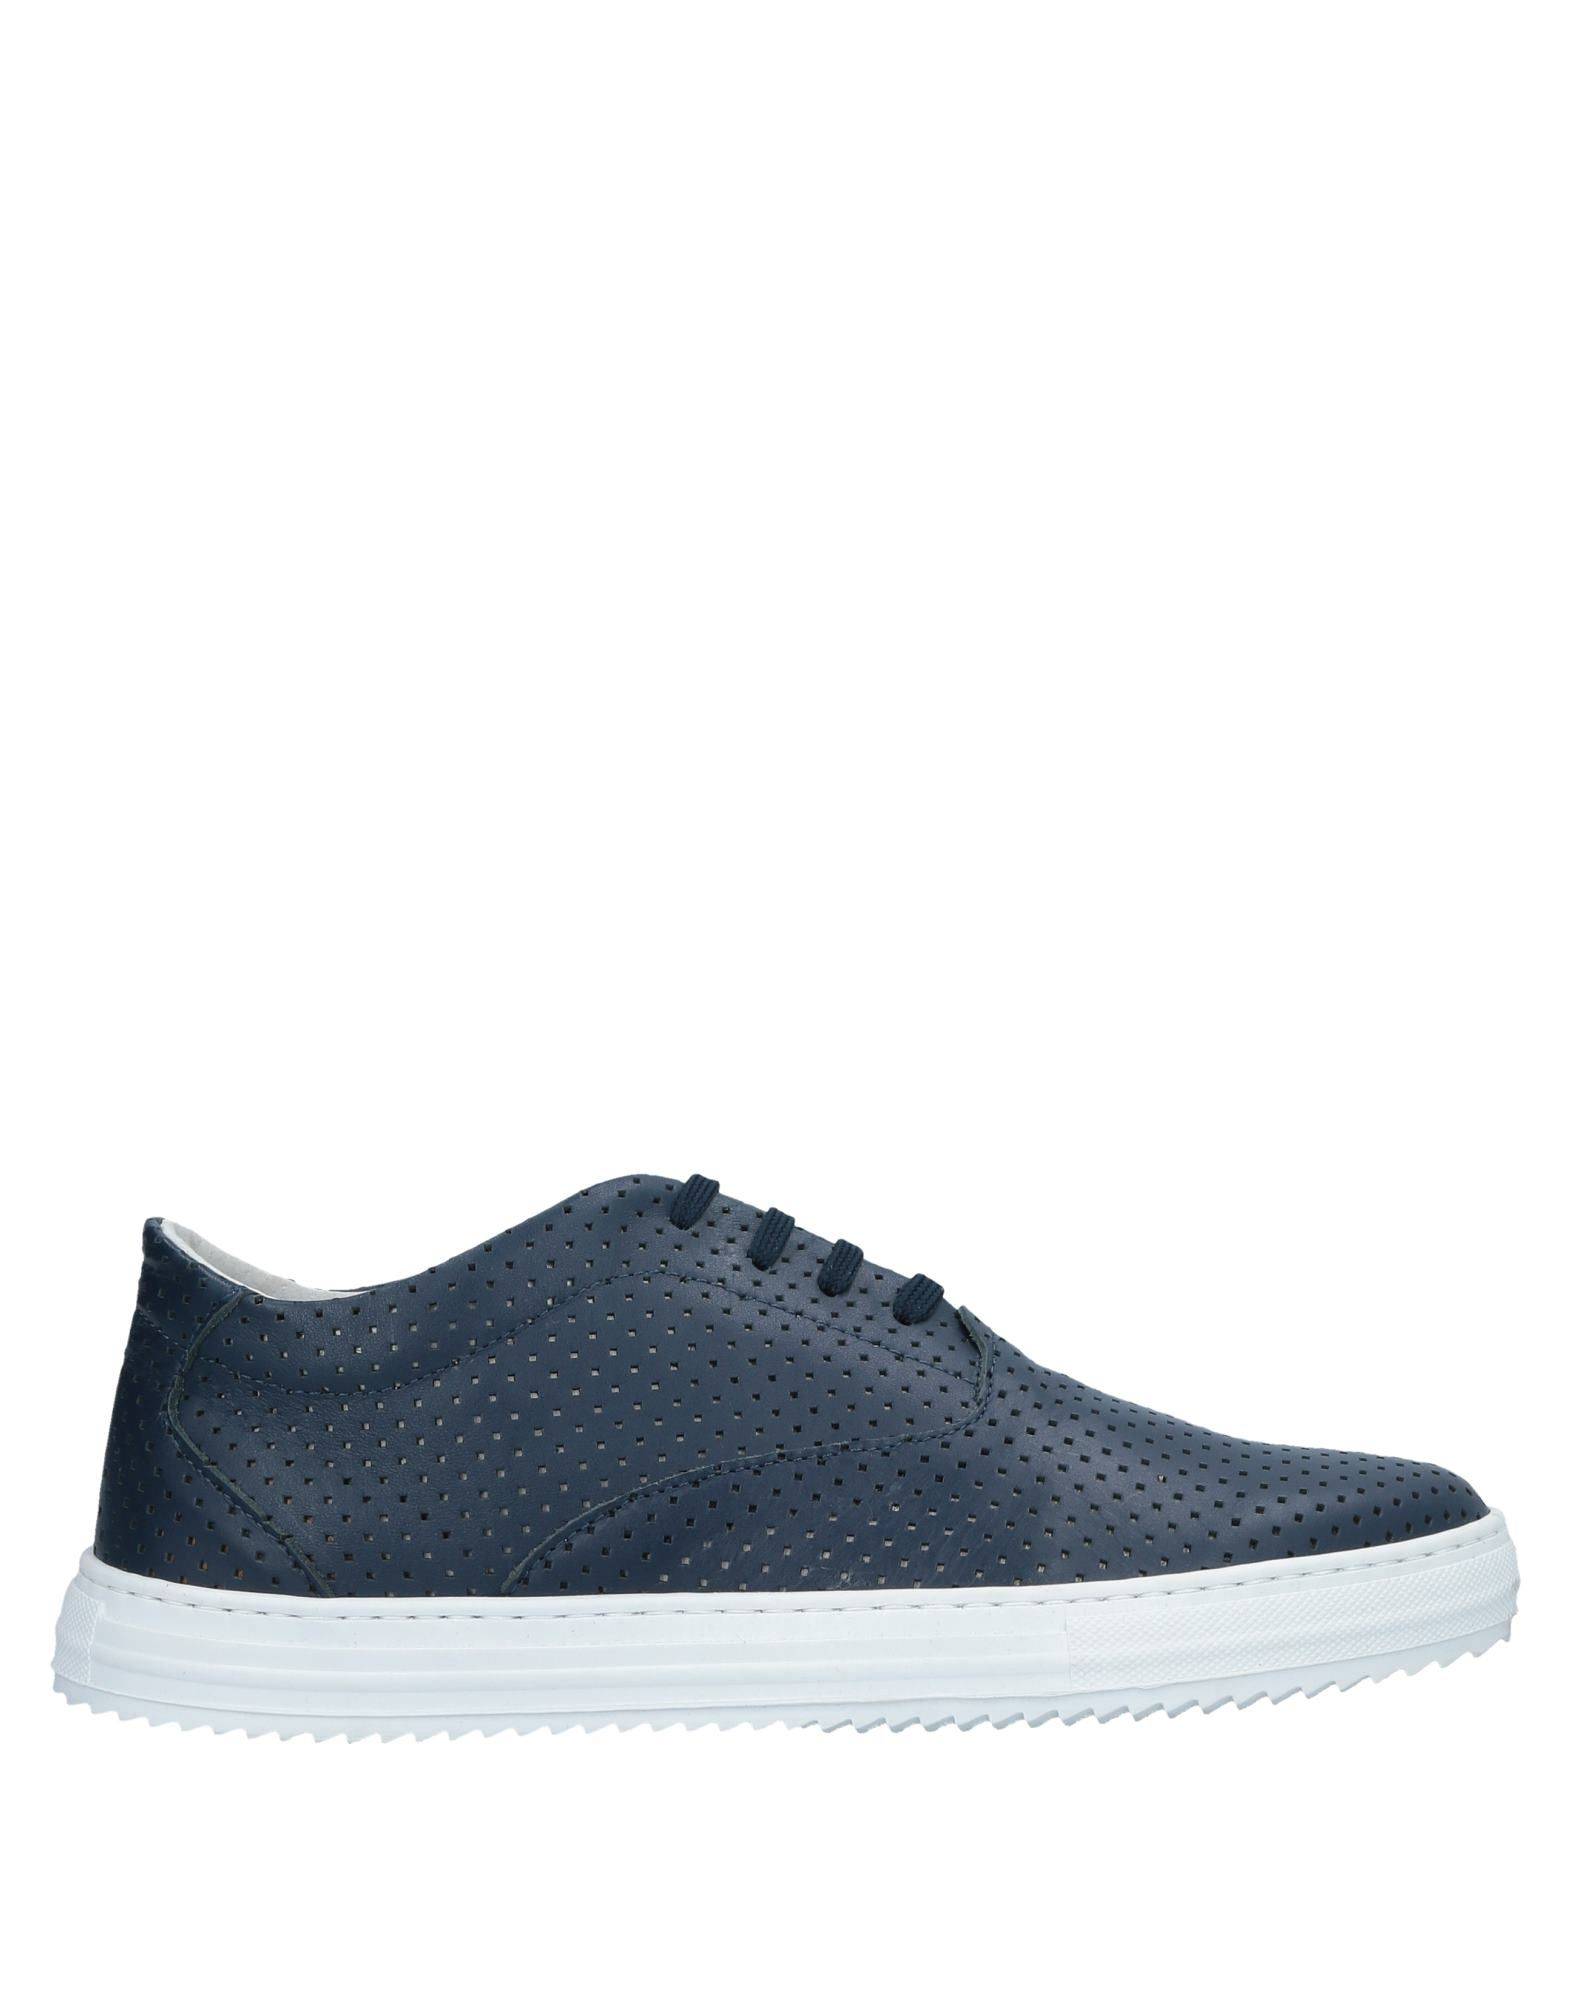 Sneakers Fratelli Circondato Homme - Sneakers Fratelli Circondato  Bleu foncé Chaussures casual sauvages